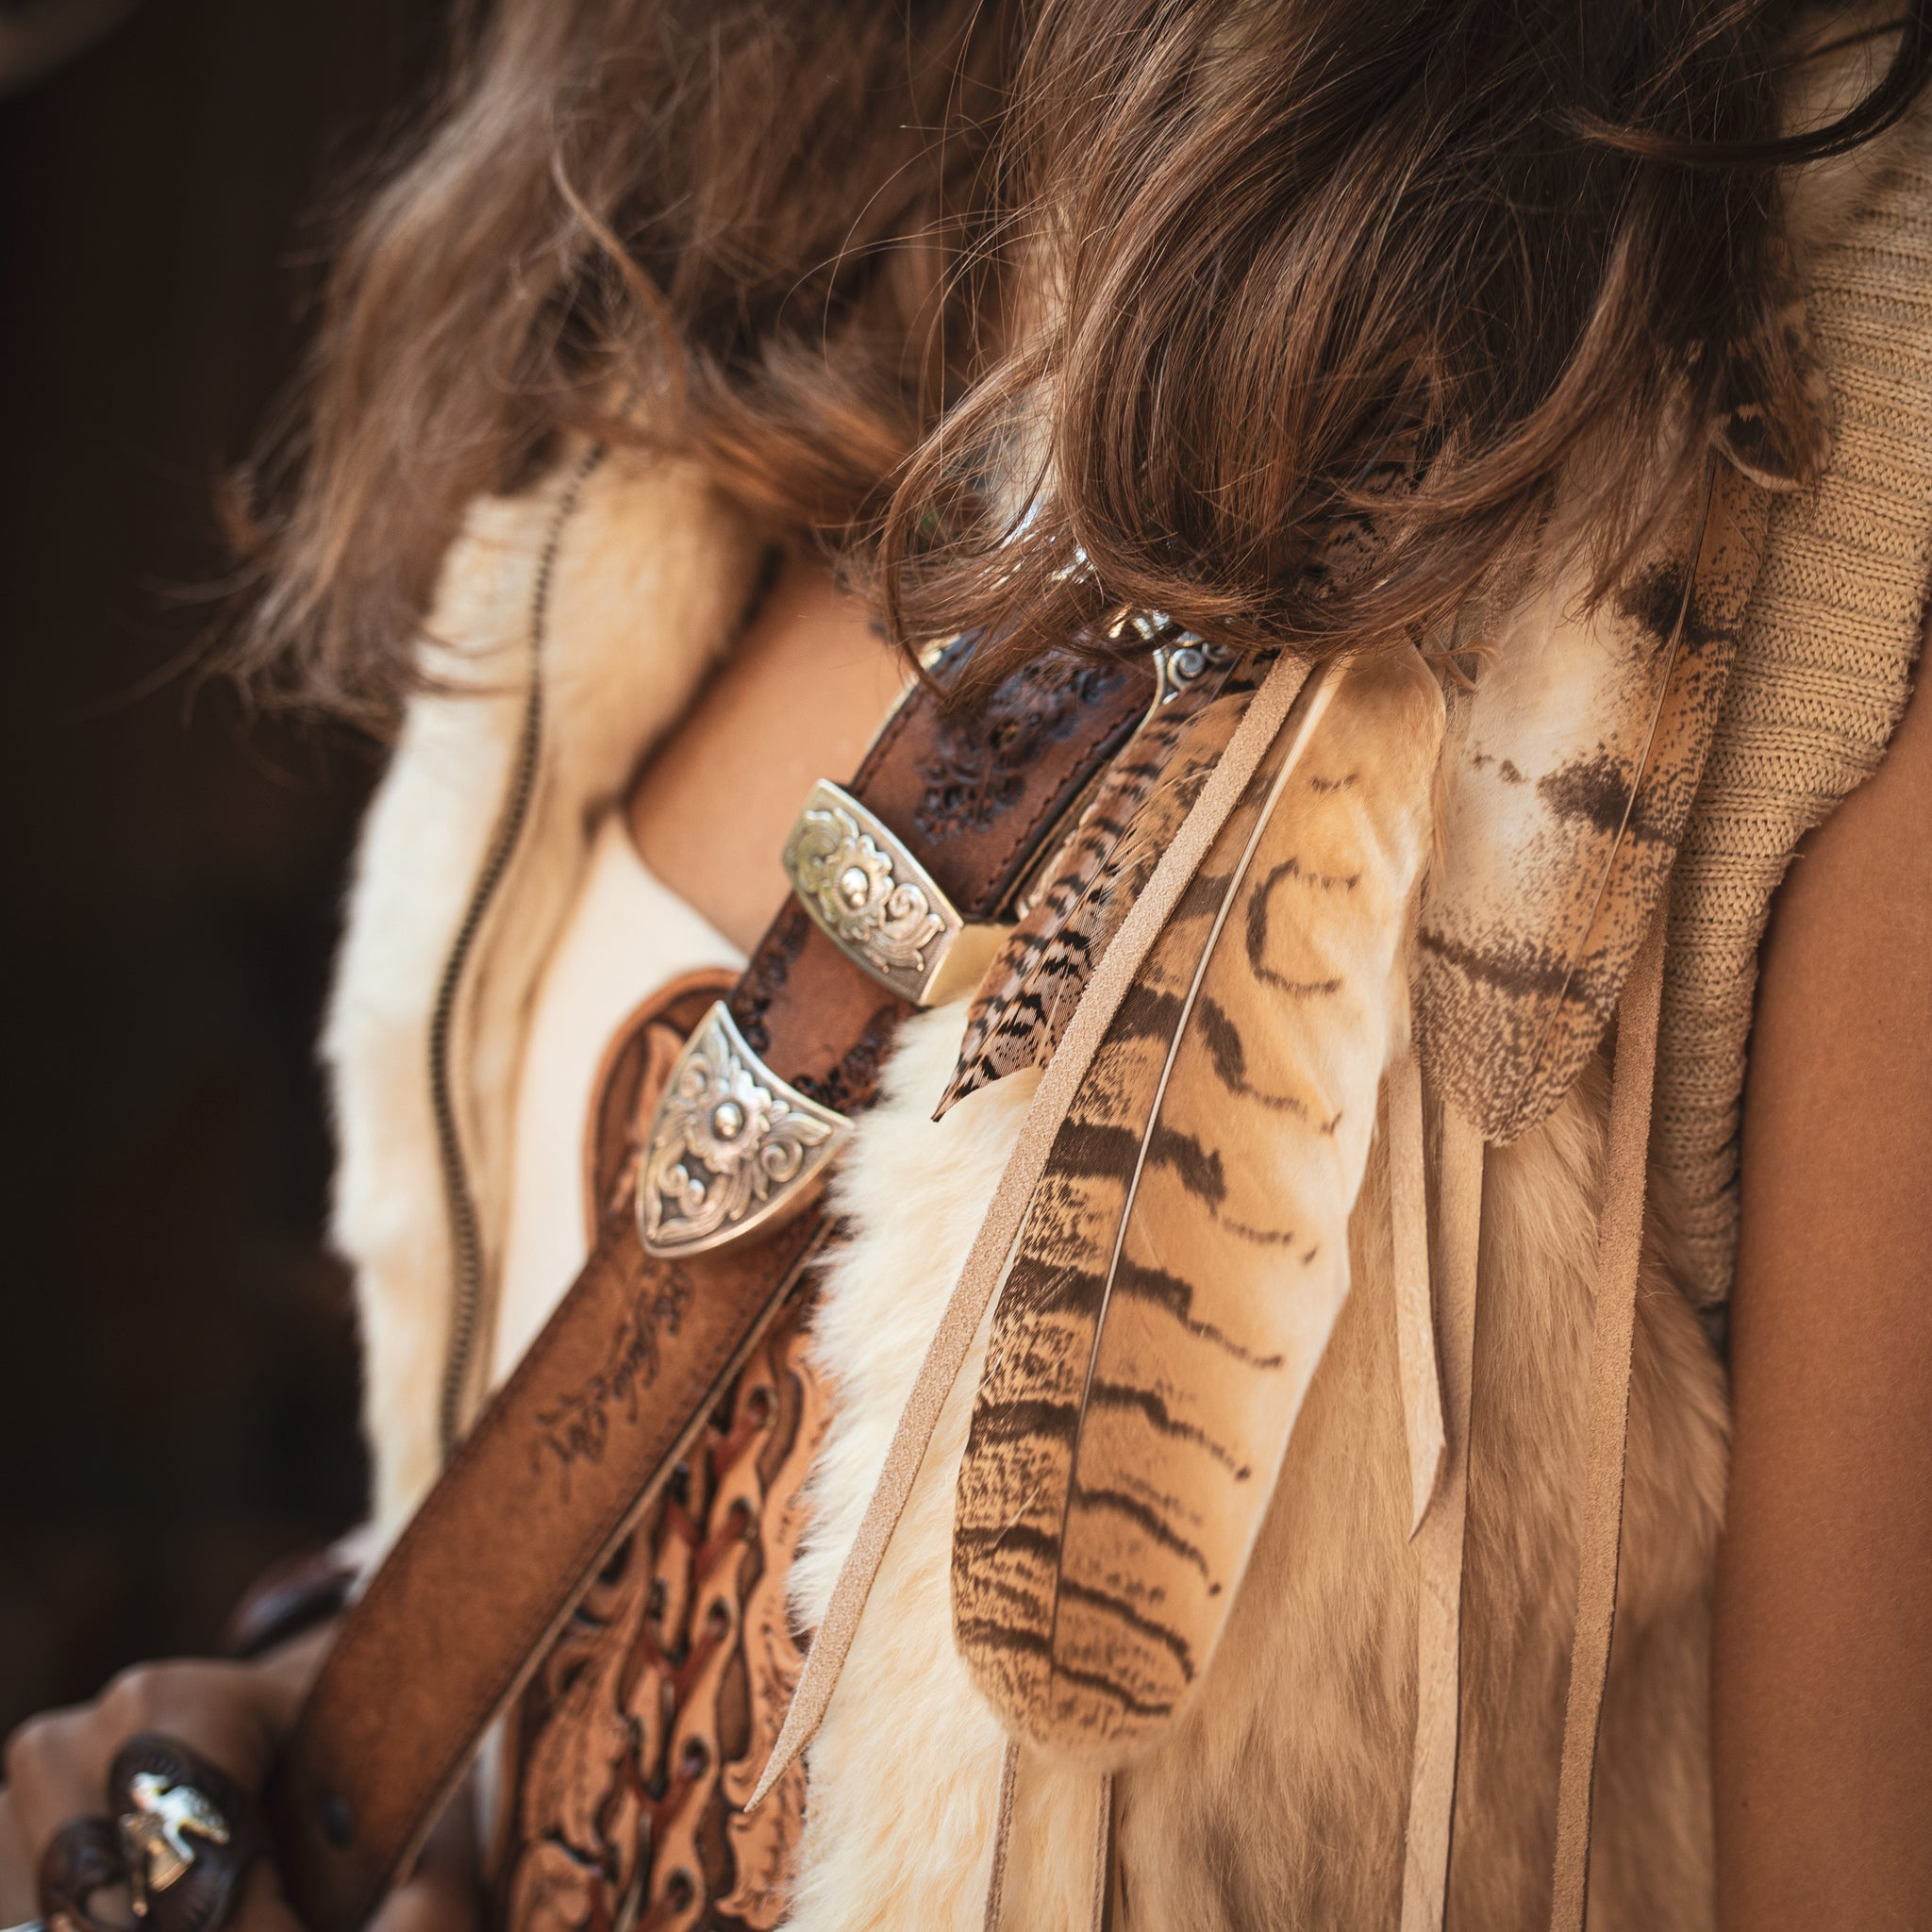 Buffalo girl feather clip & tooled leather bag strap detail